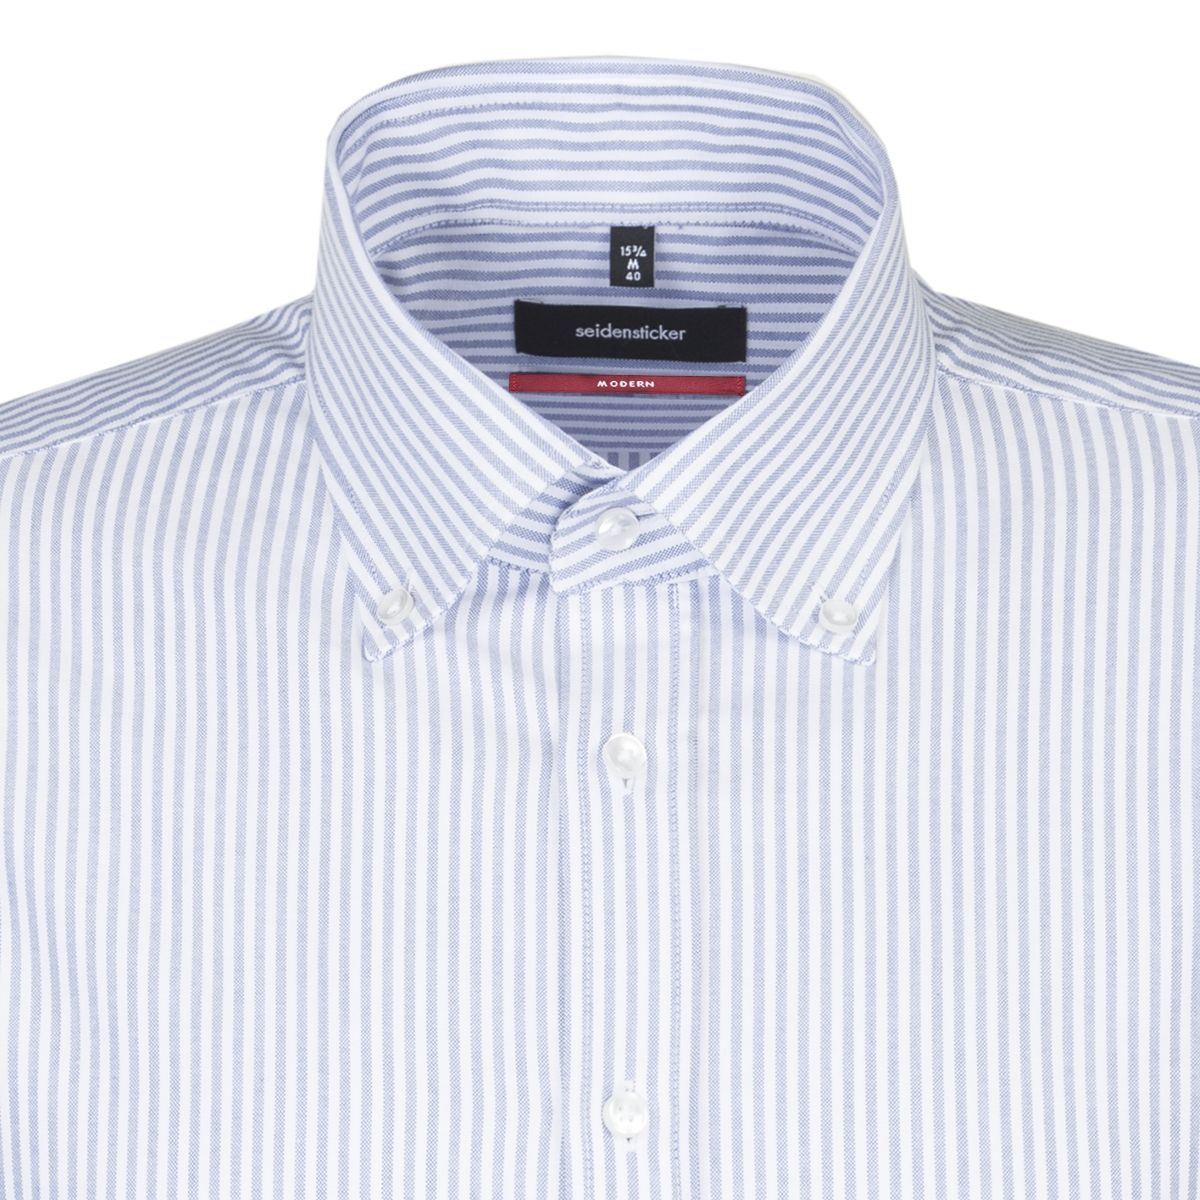 Chemise droite Printed rayures bleu ciel oxford